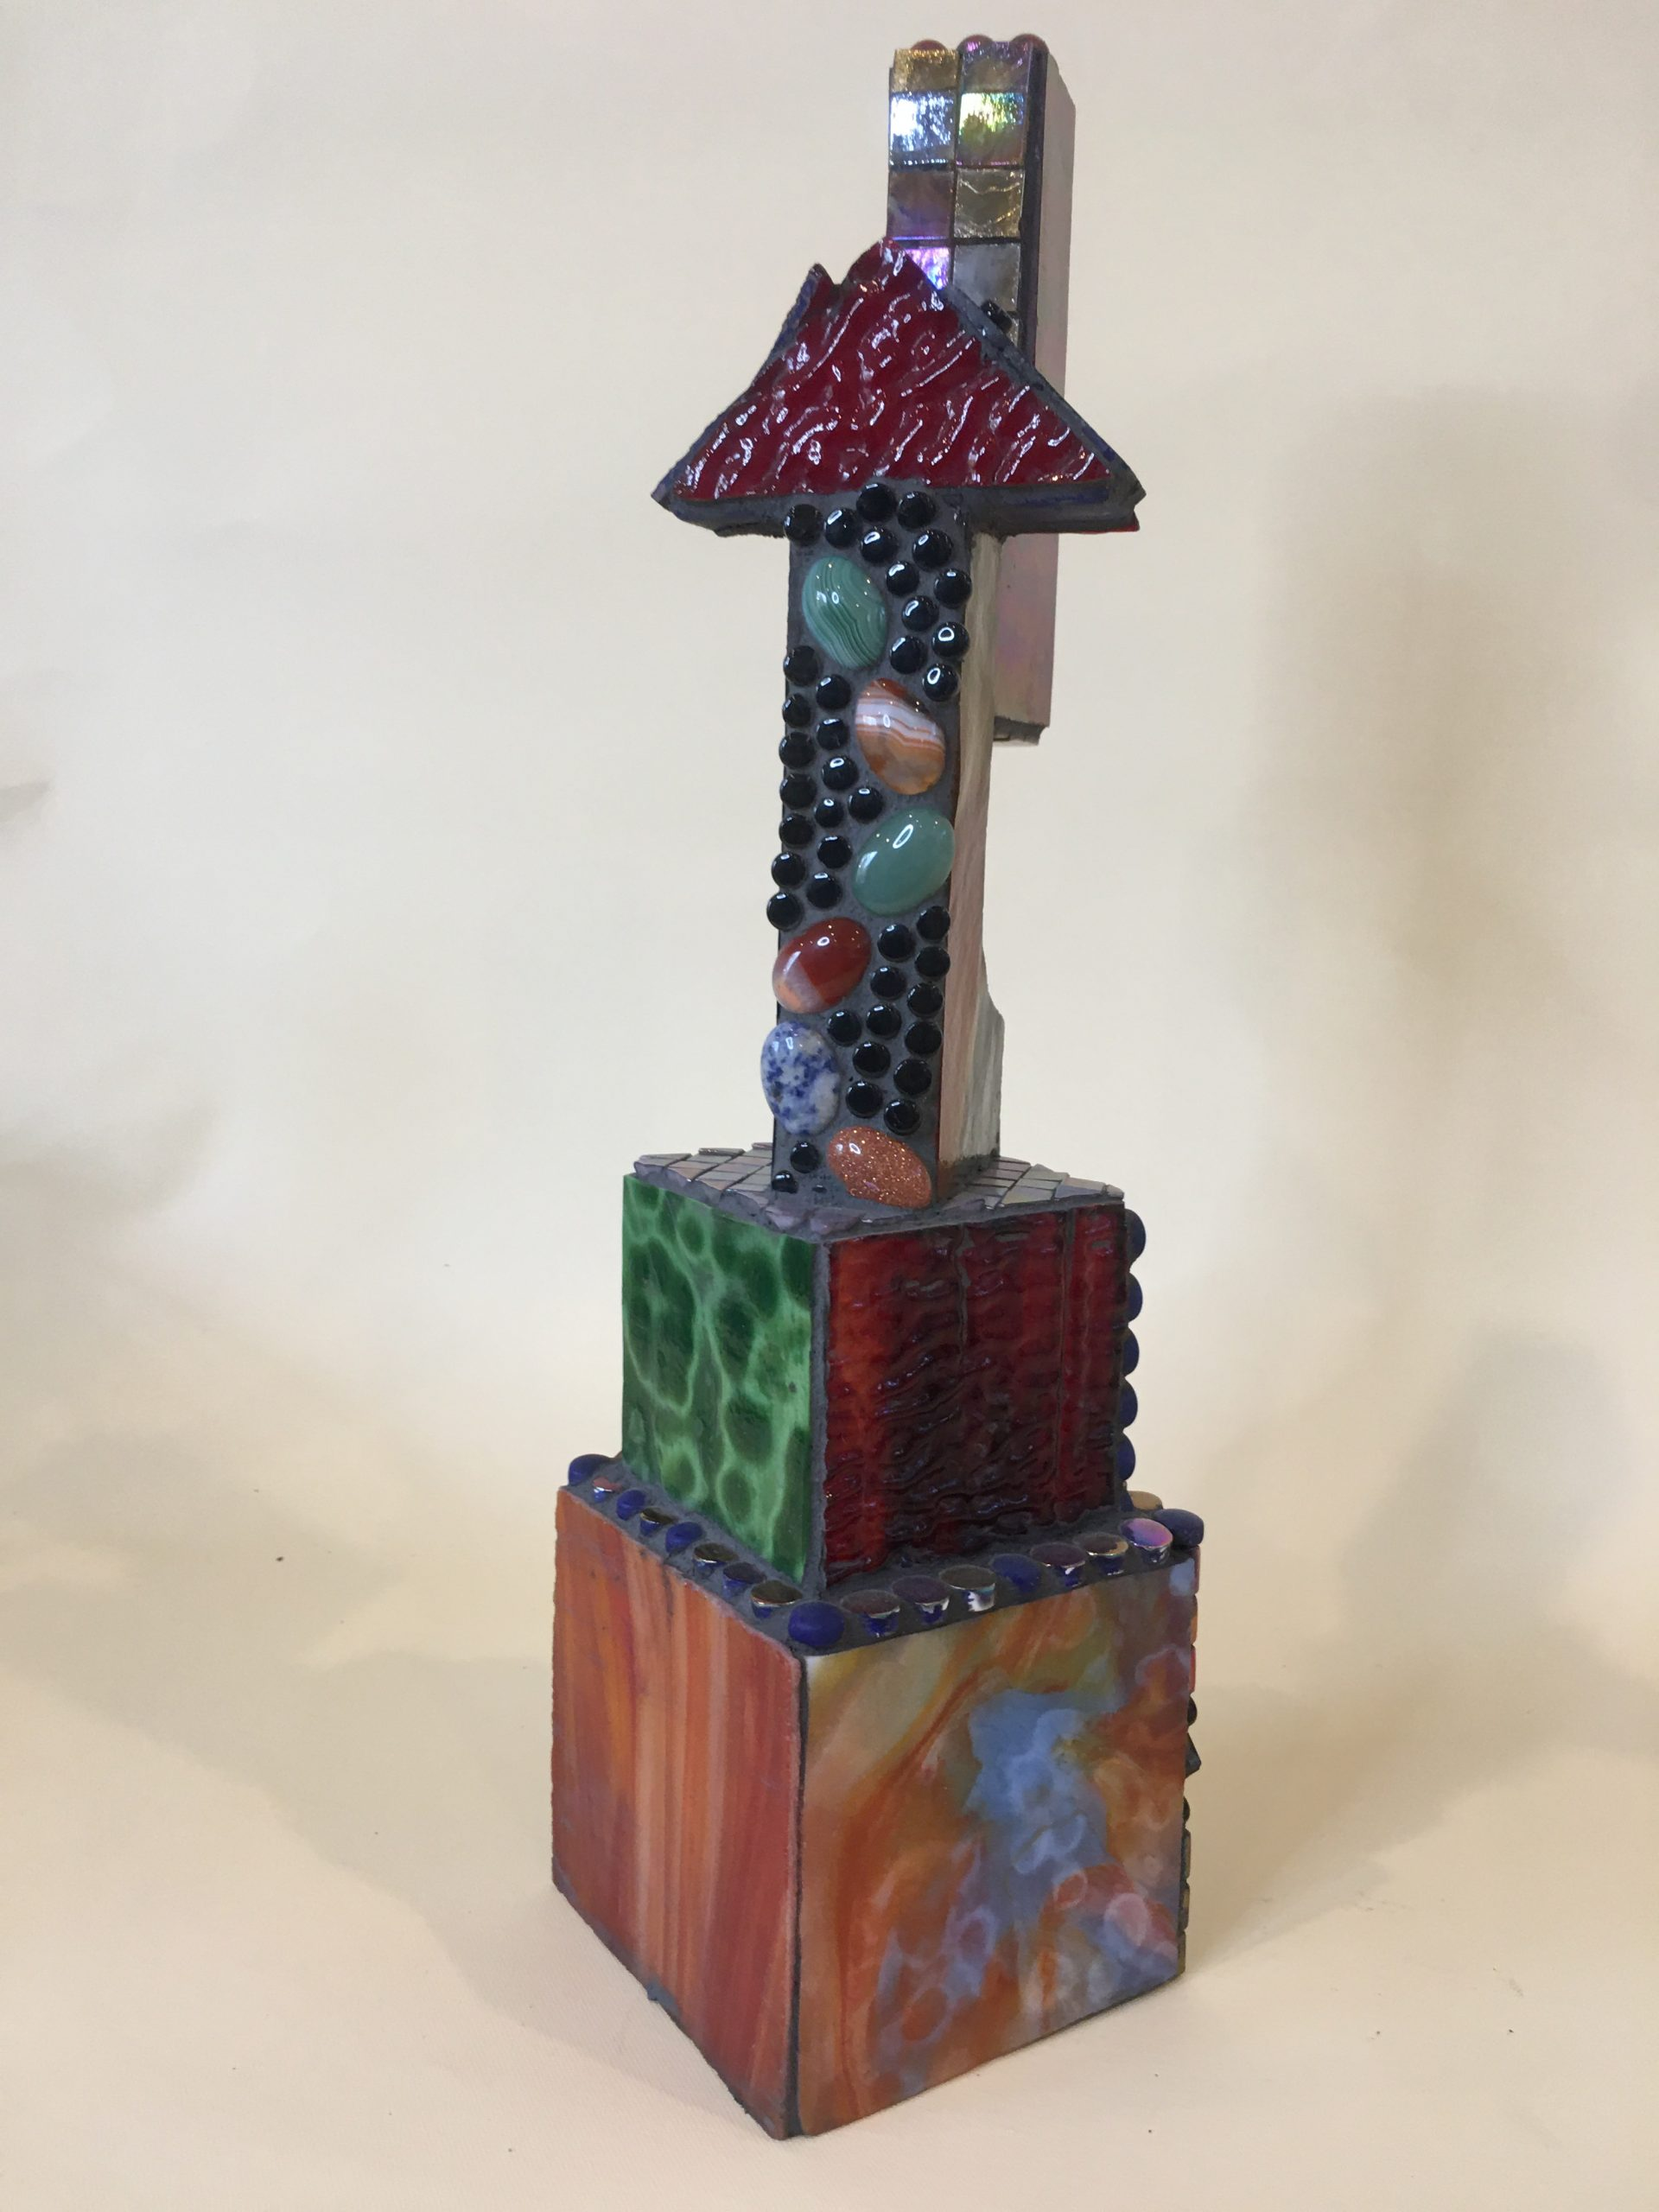 Glass Mosaic over wood sculpture No. 8